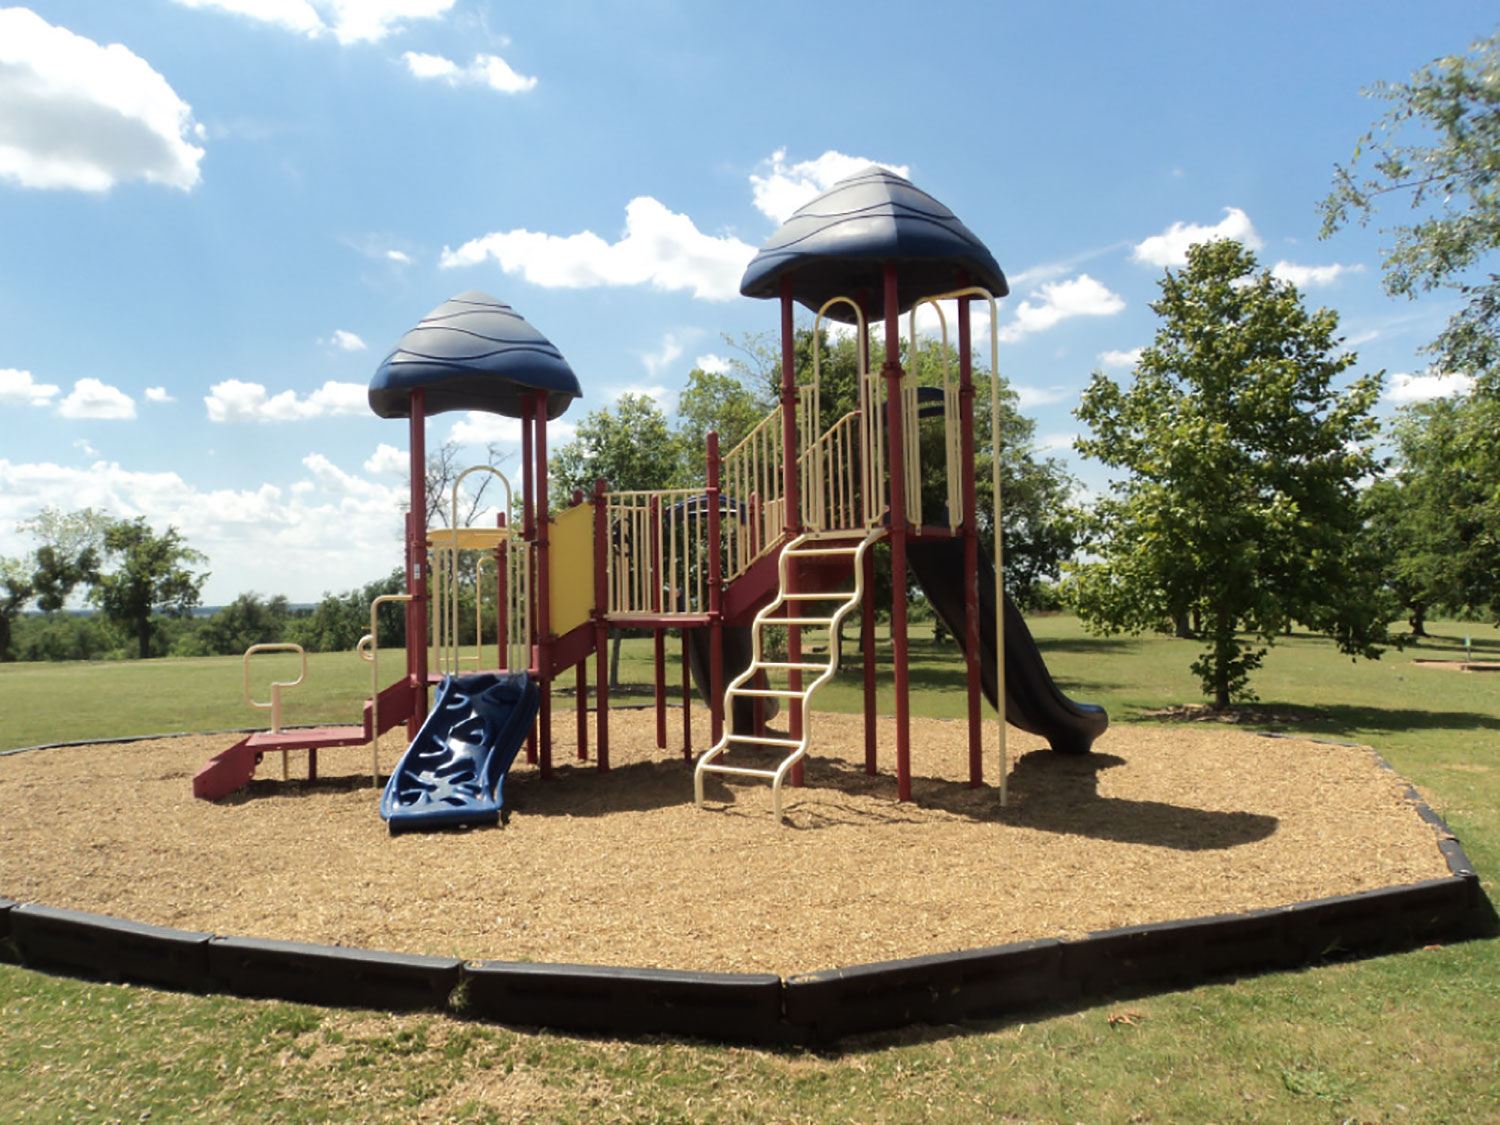 Playscape at Pinnacle Park in Georgetown, TX